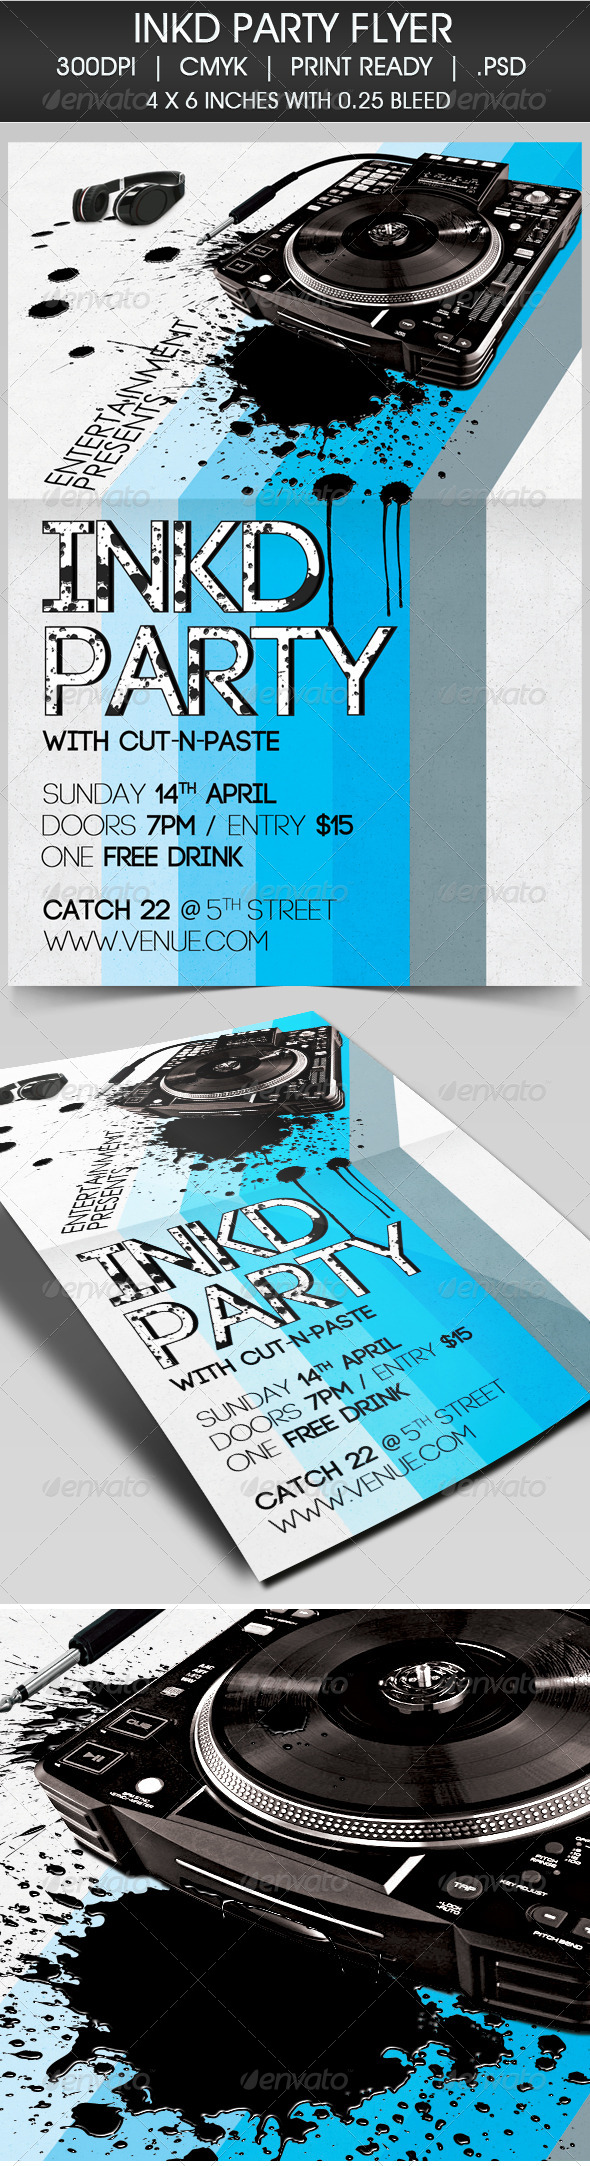 GraphicRiver Inkd Party Flyer 4228020